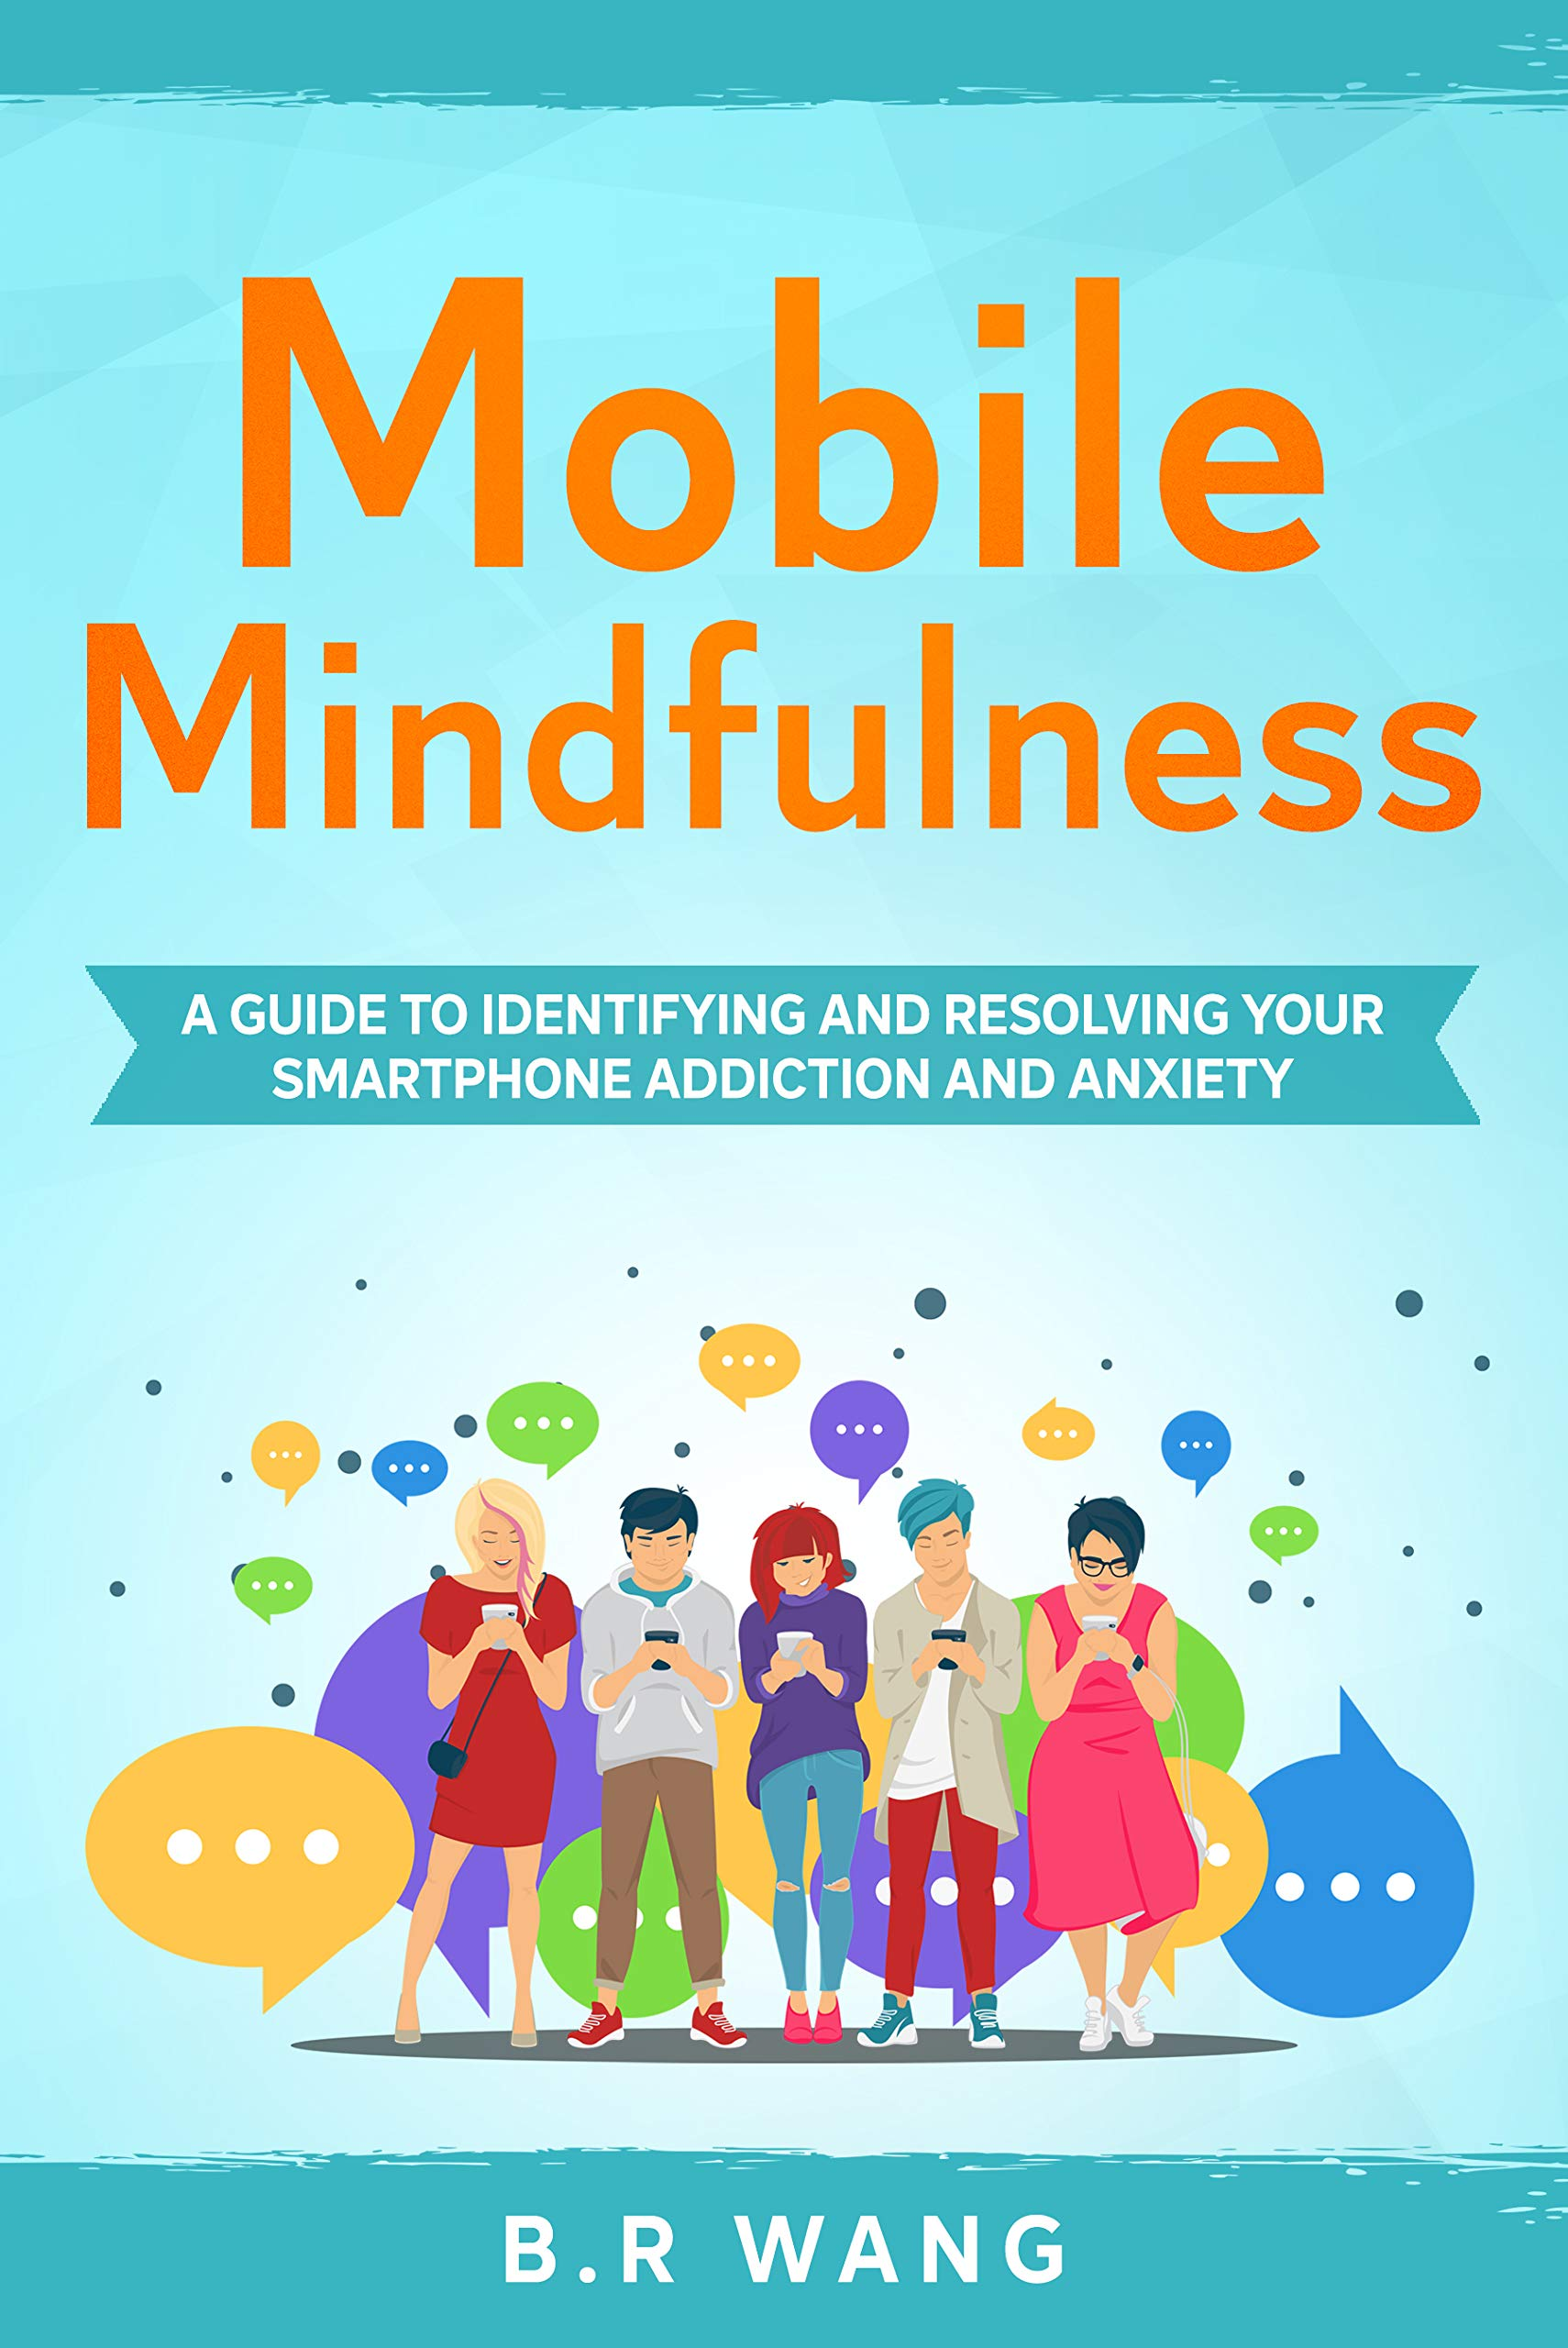 Mobile Mindfulness: A Guide to Identifying and Resolving Your Smartphone Addiction and Anxiety